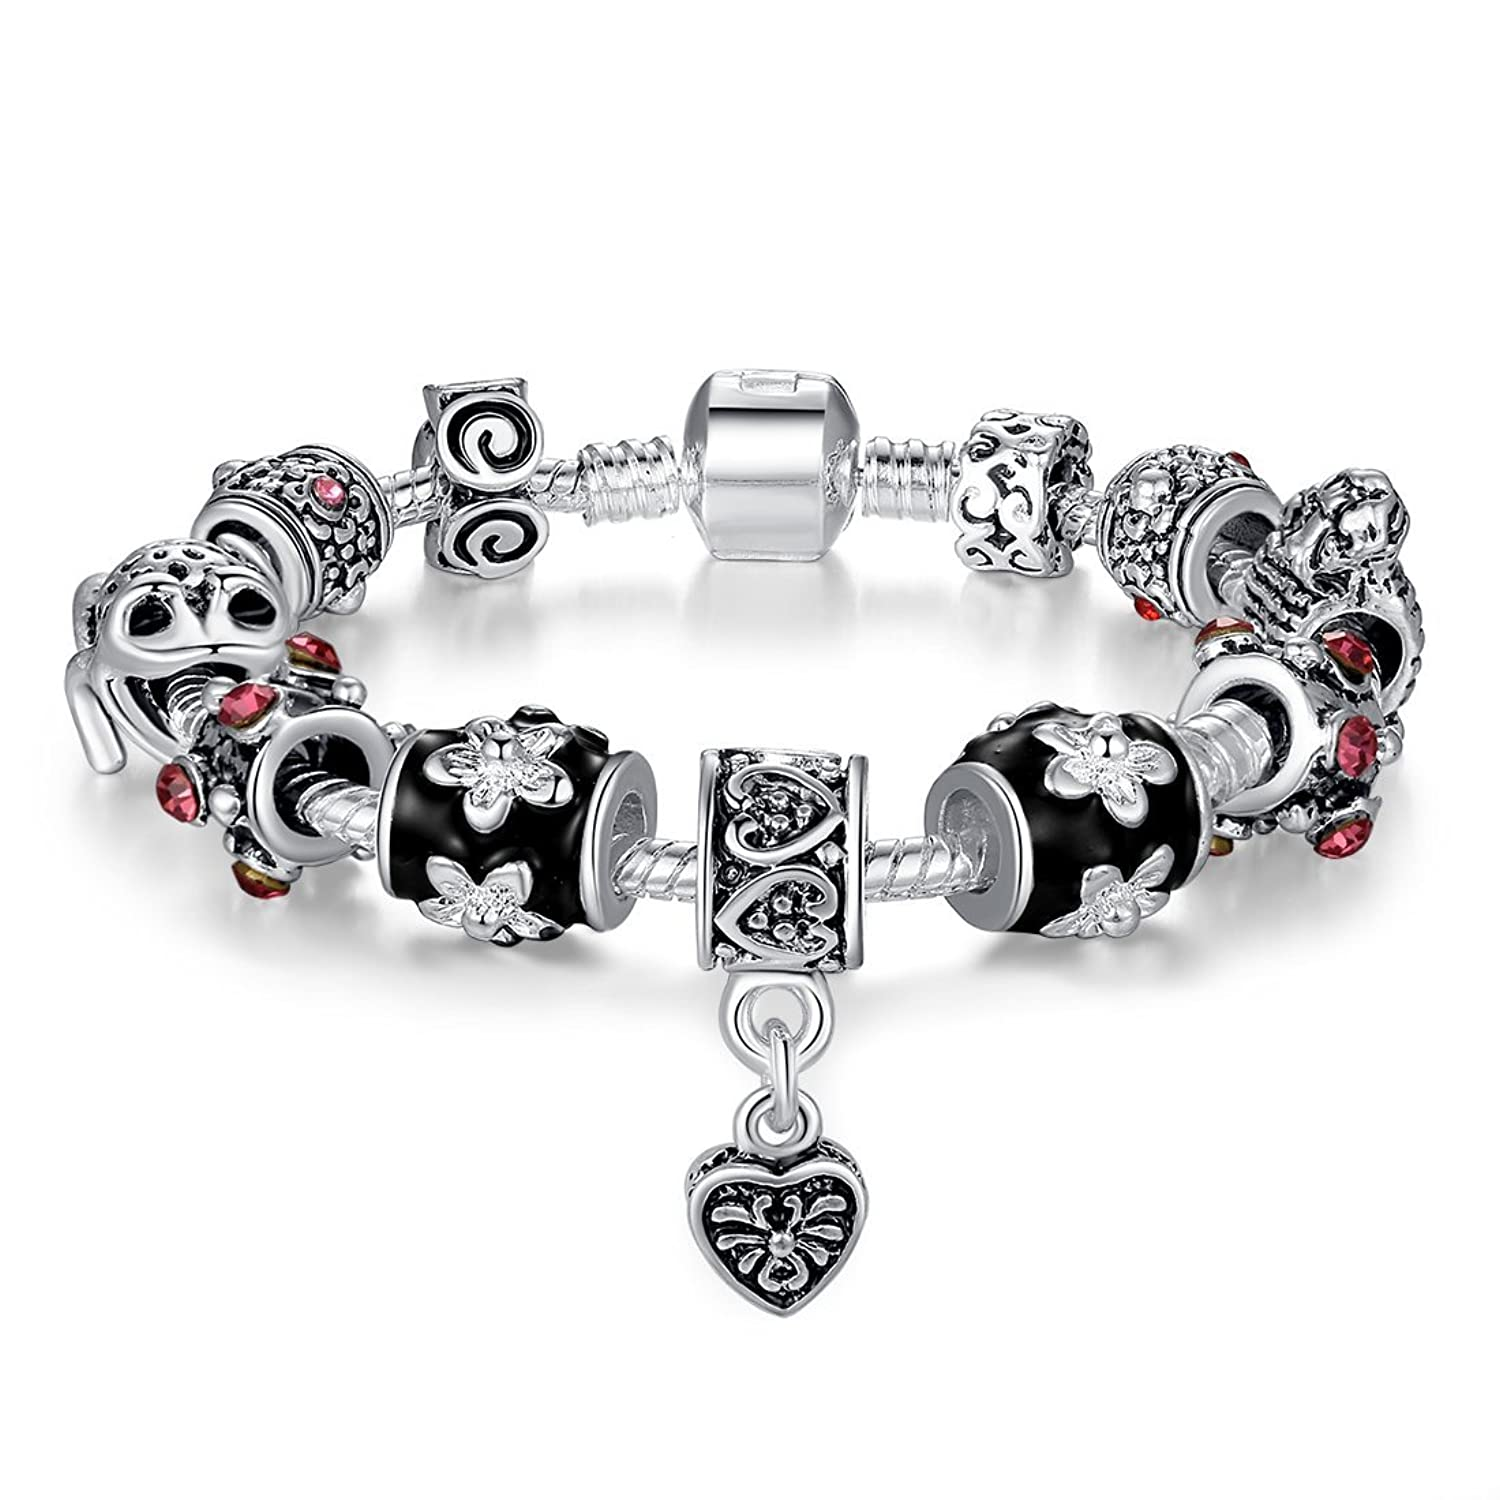 Carina Sterling Silver Pandora Collection Charms Bracelet for